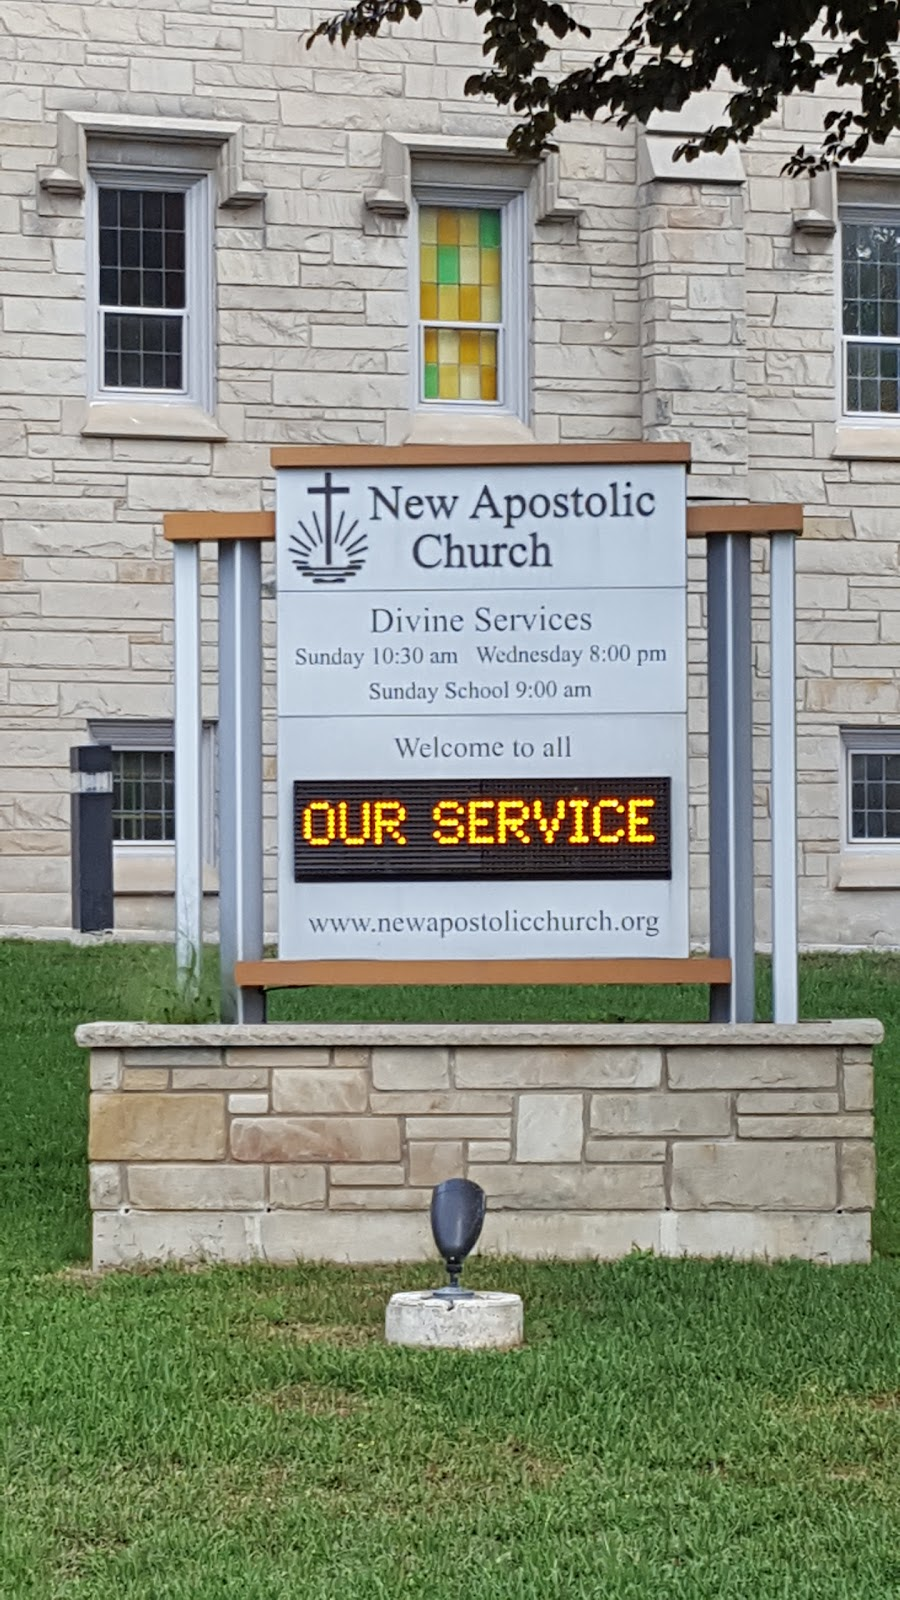 New Apostolic Church | church | 160 Margaret Ave, Kitchener, ON N2H 4H8, Canada | 8666227828 OR +1 866-622-7828